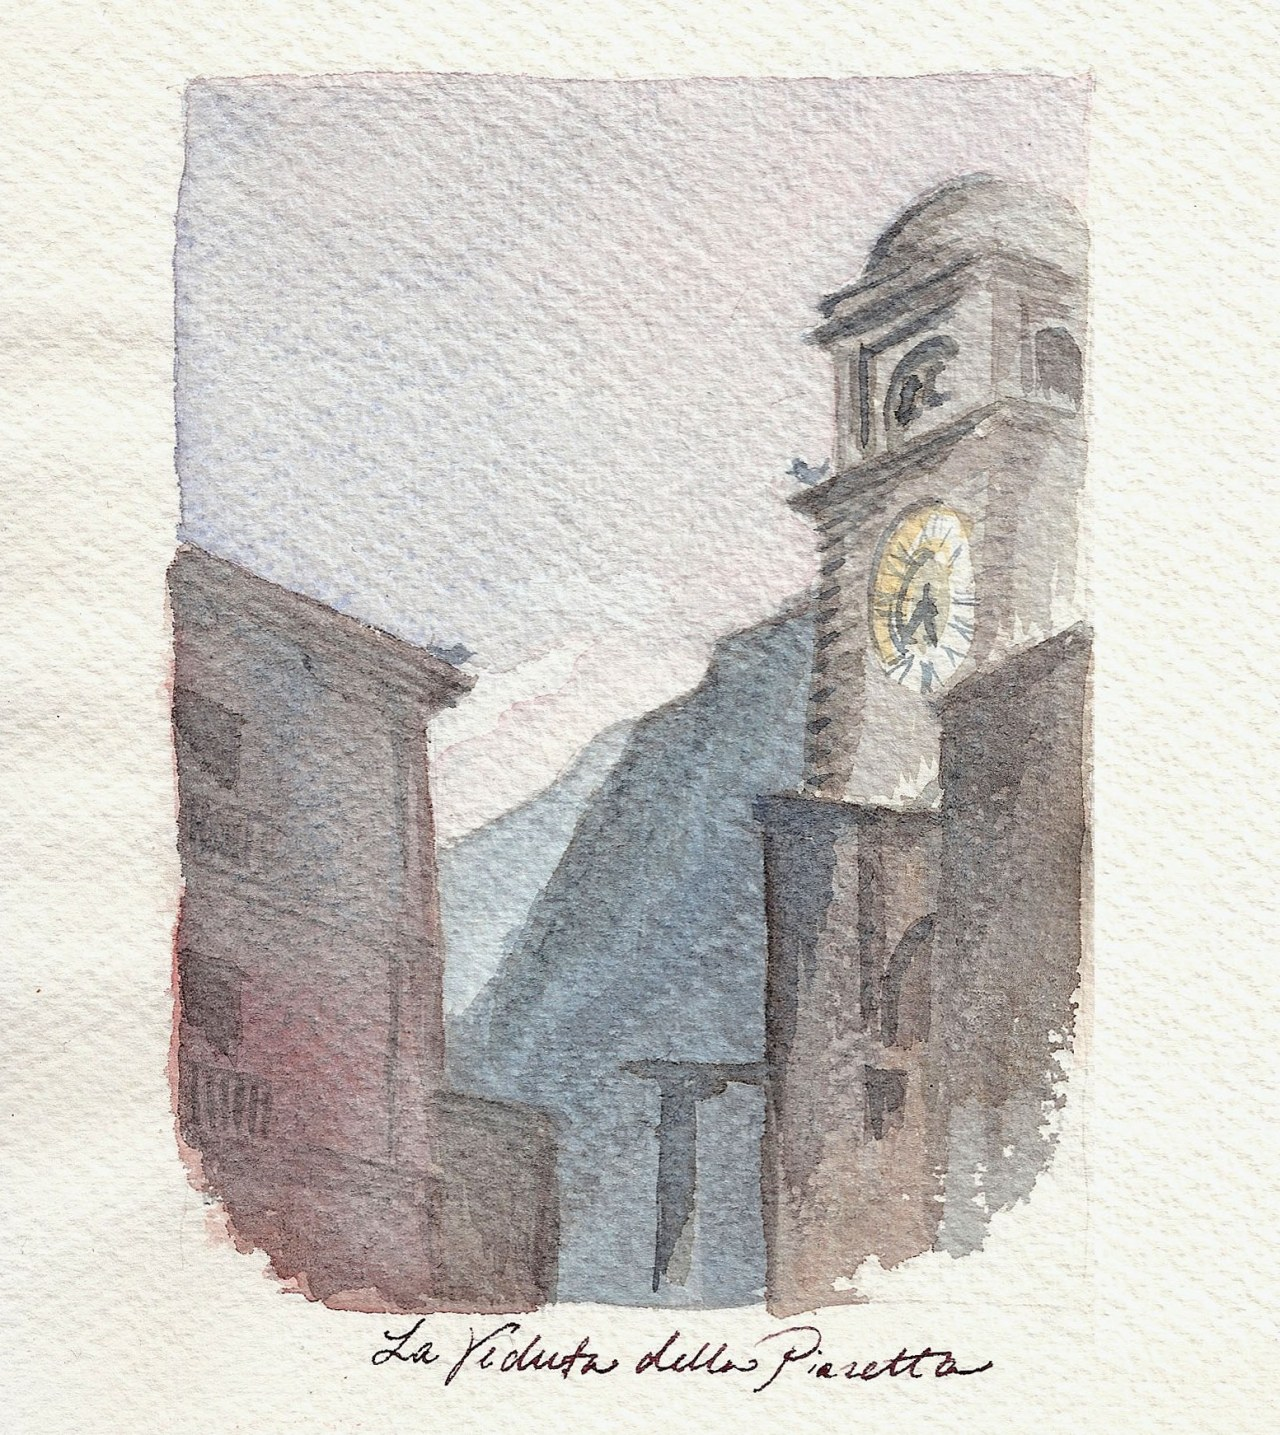 italy-capri-la-piazzetta-watercolor-on-paper_SQUARE